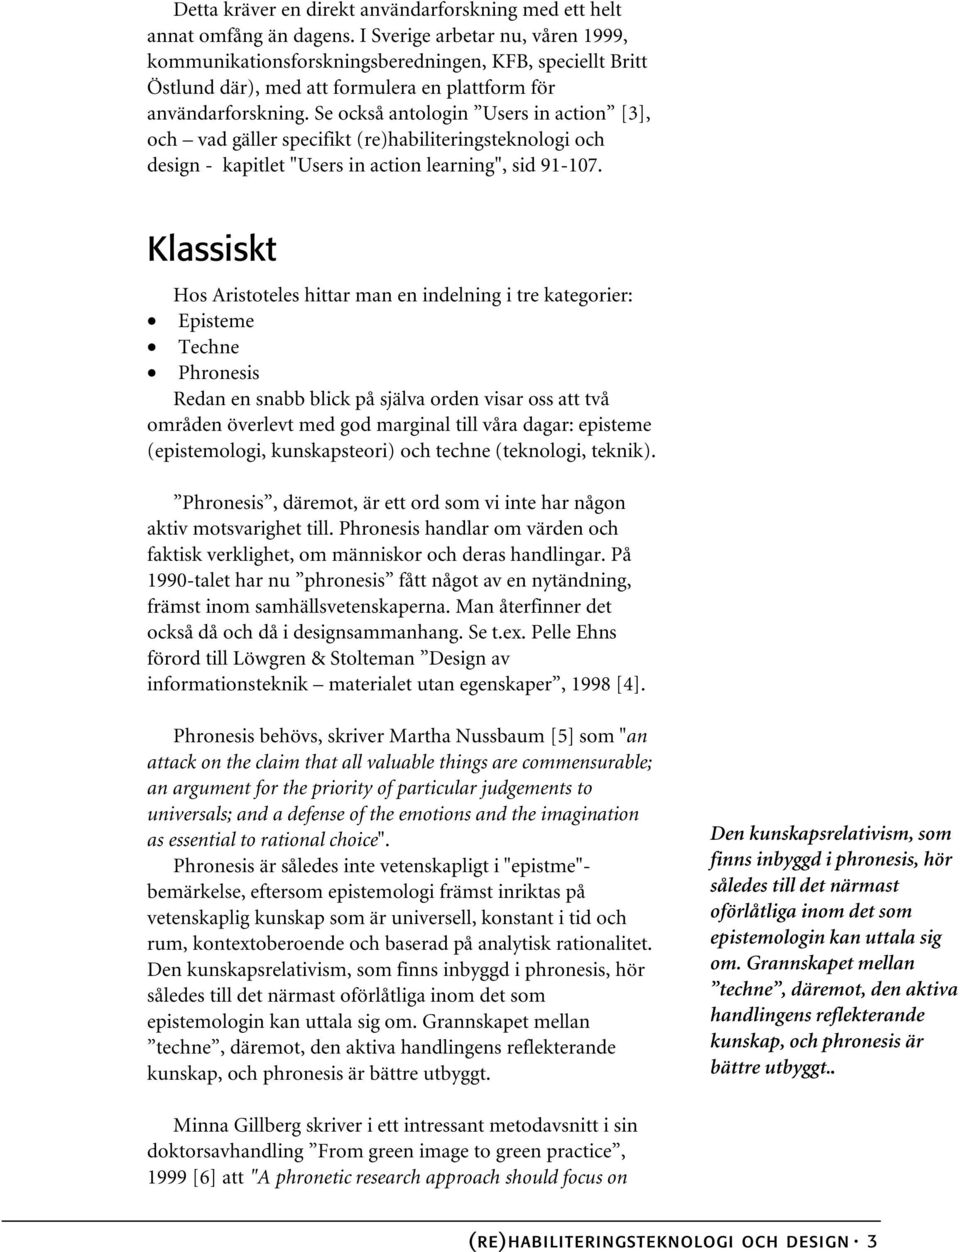 "Se också antologin Users in action [3], och vad gäller specifikt (re)habiliteringsteknologi och design - kapitlet ""Users in action learning"", sid 91-107."